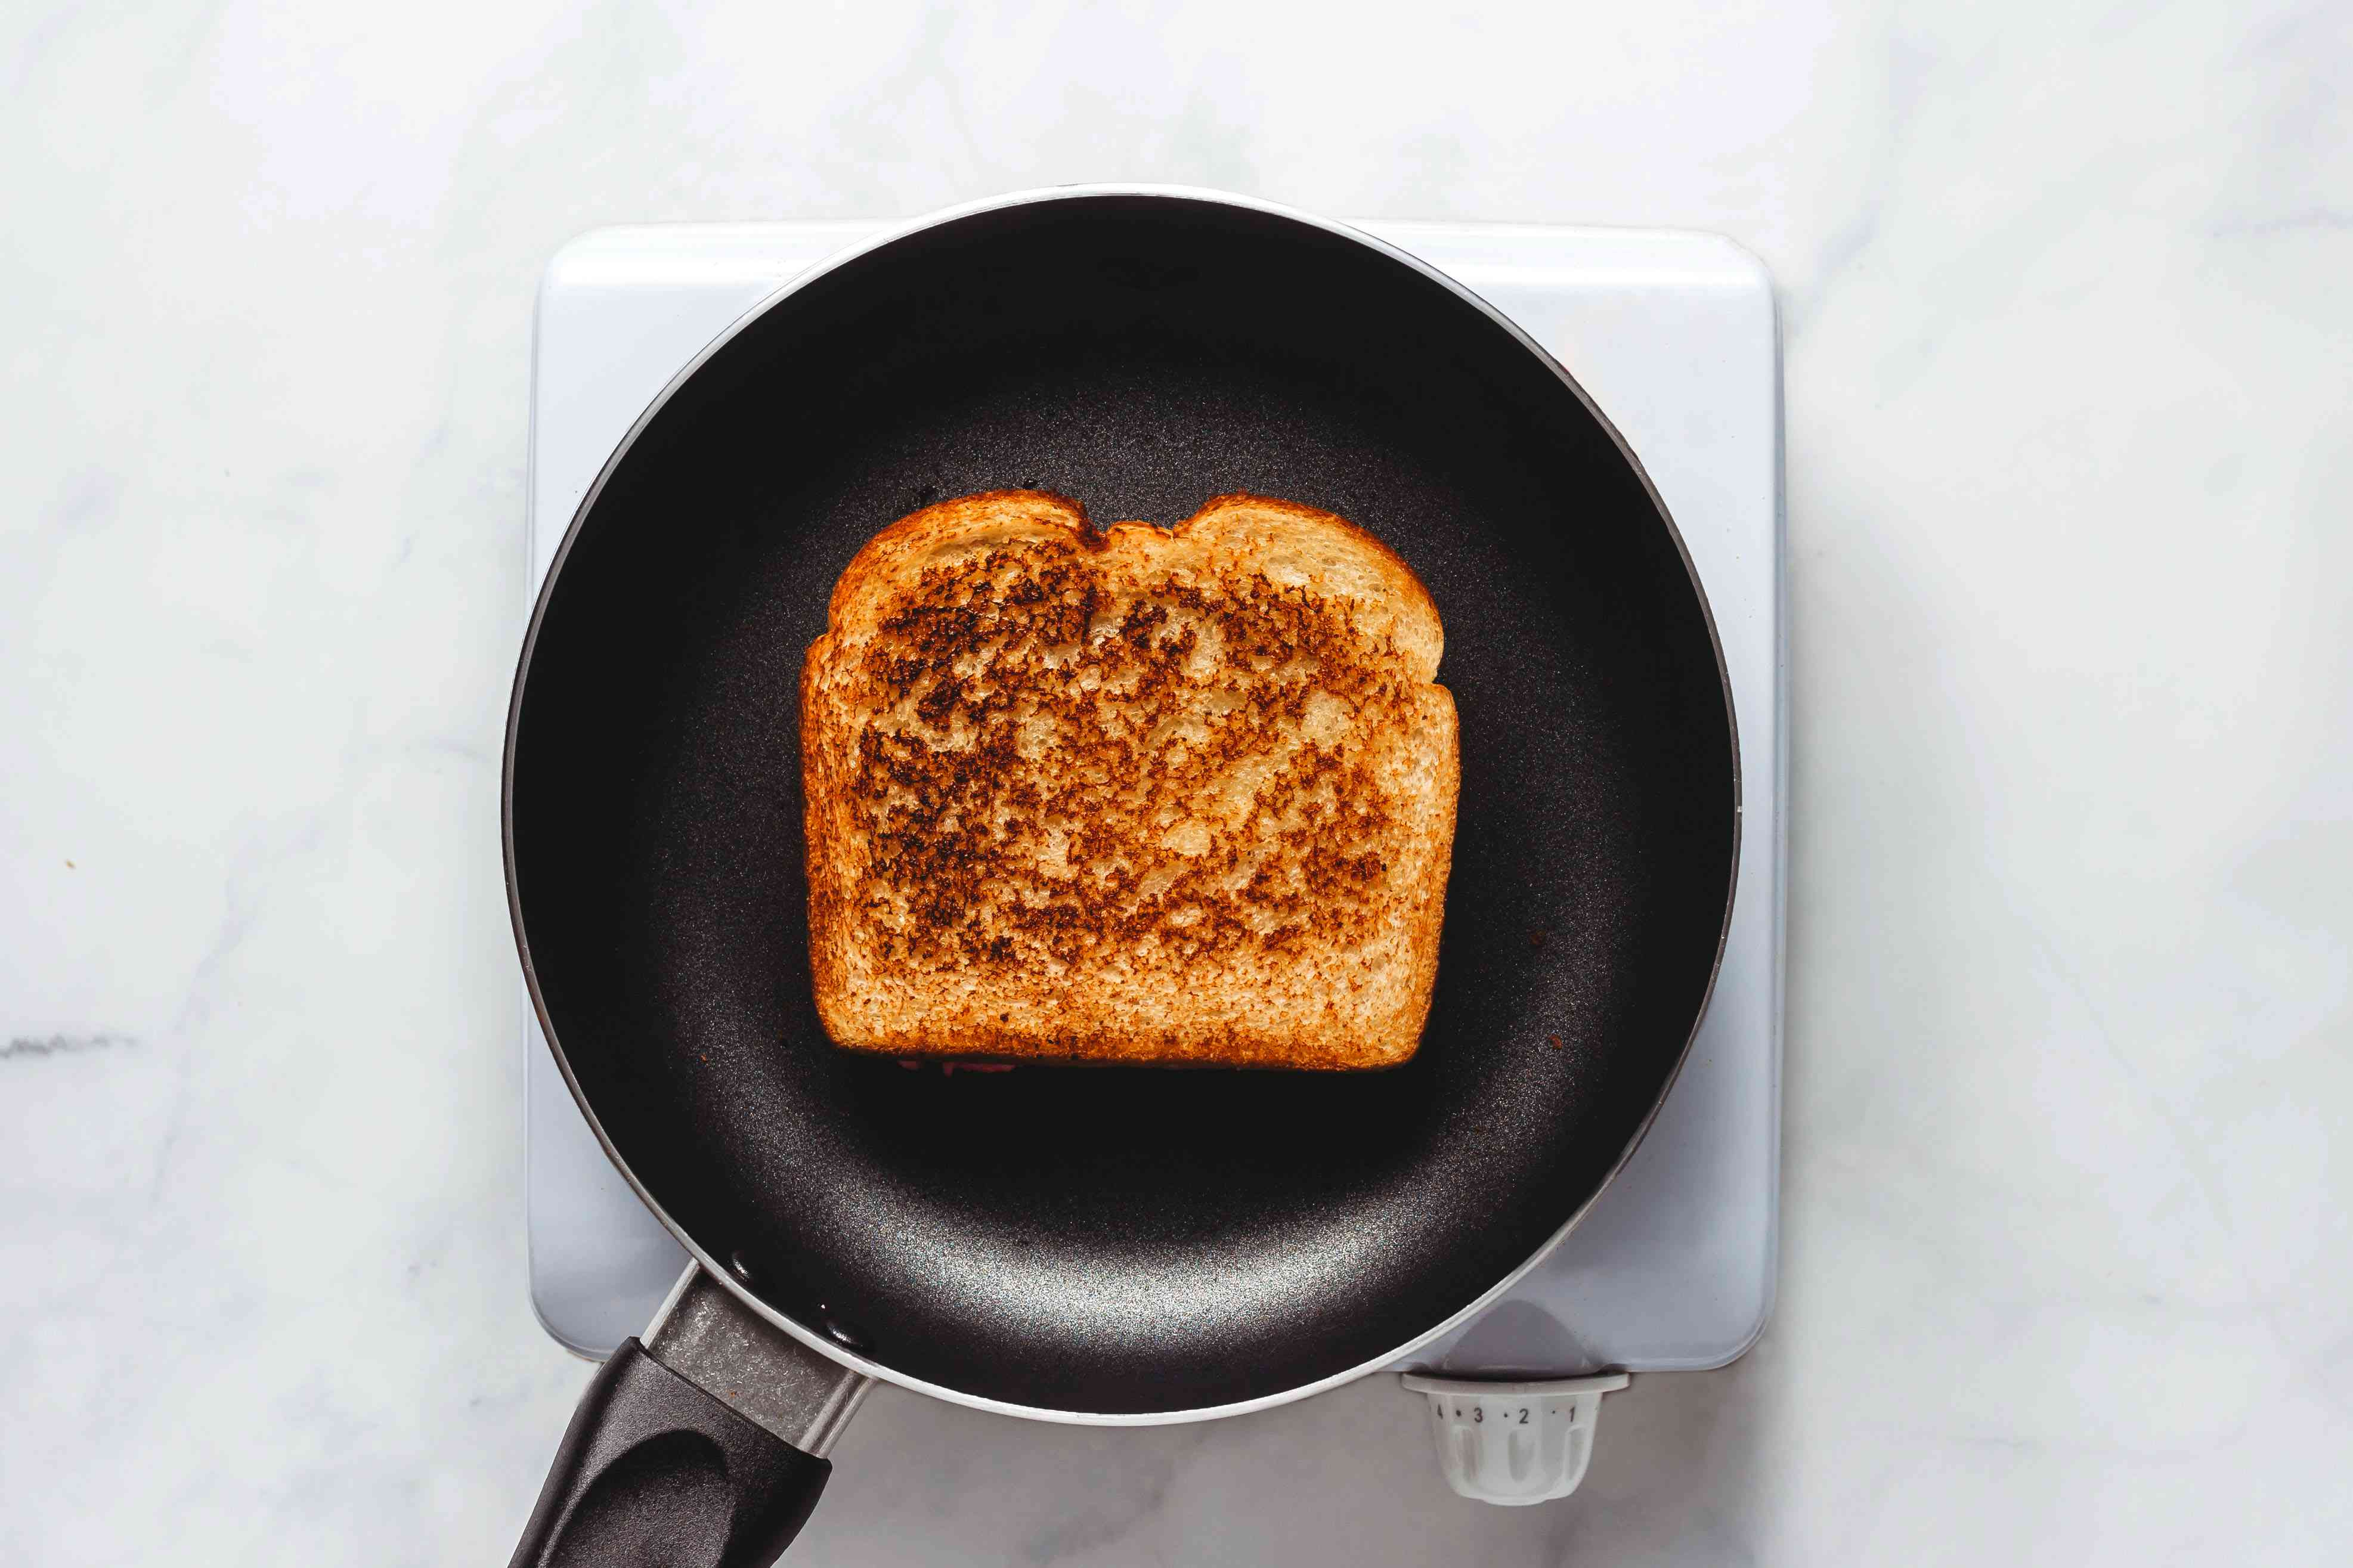 grilled cheese browned on one side in pan